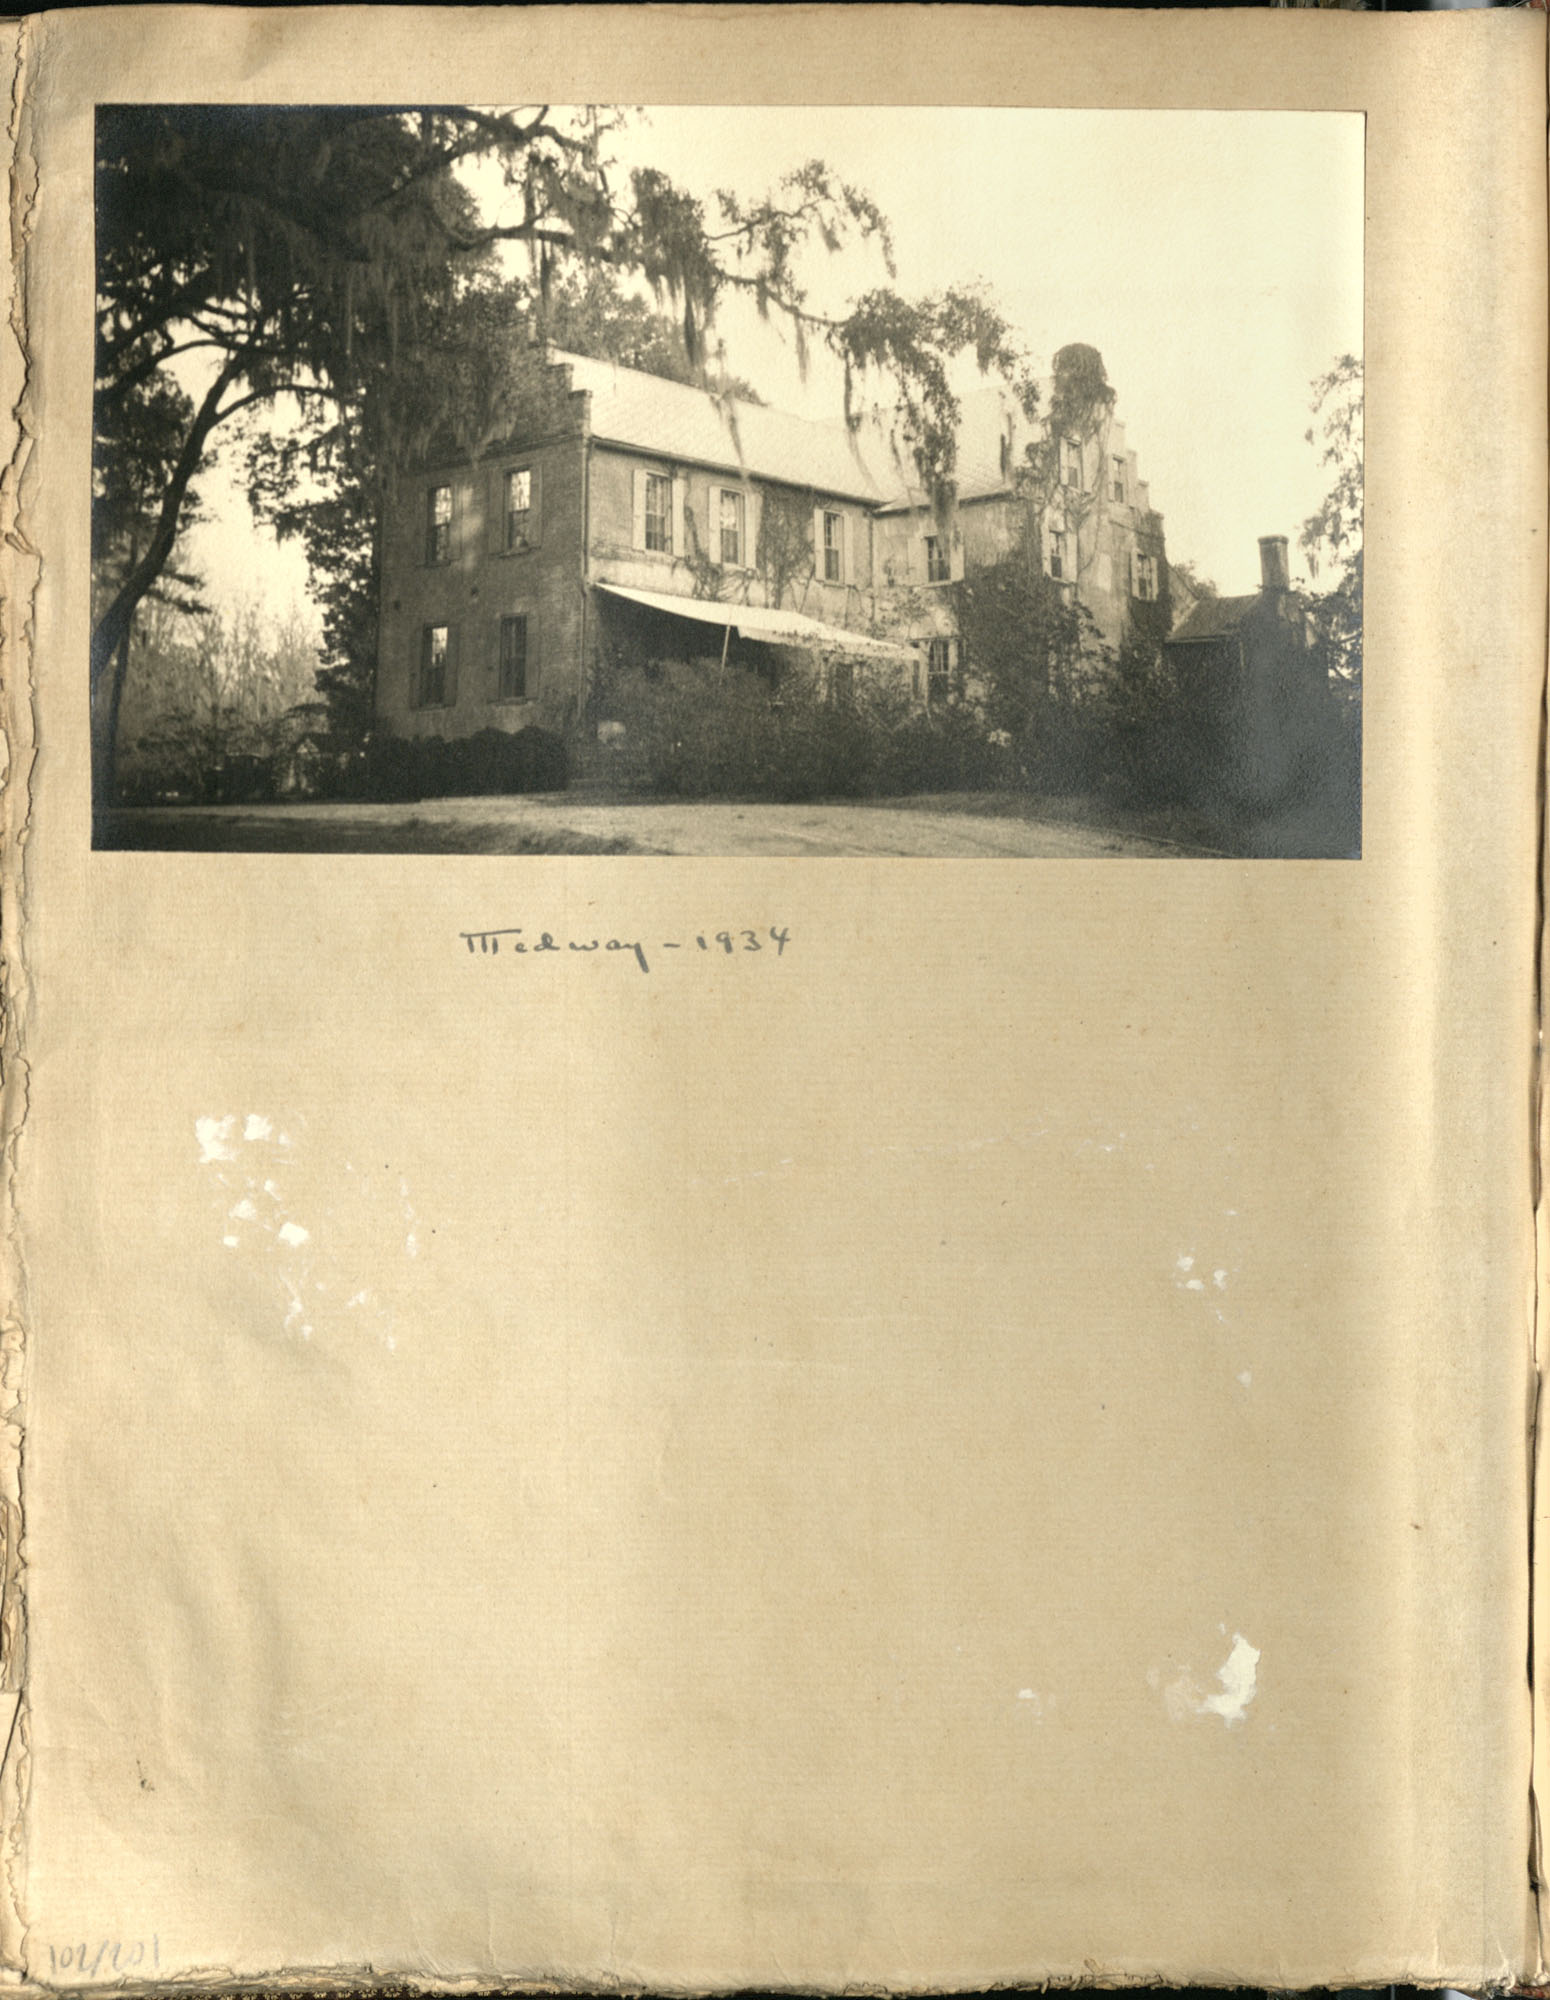 Early Medway and travels album, 1929-1937, page 102